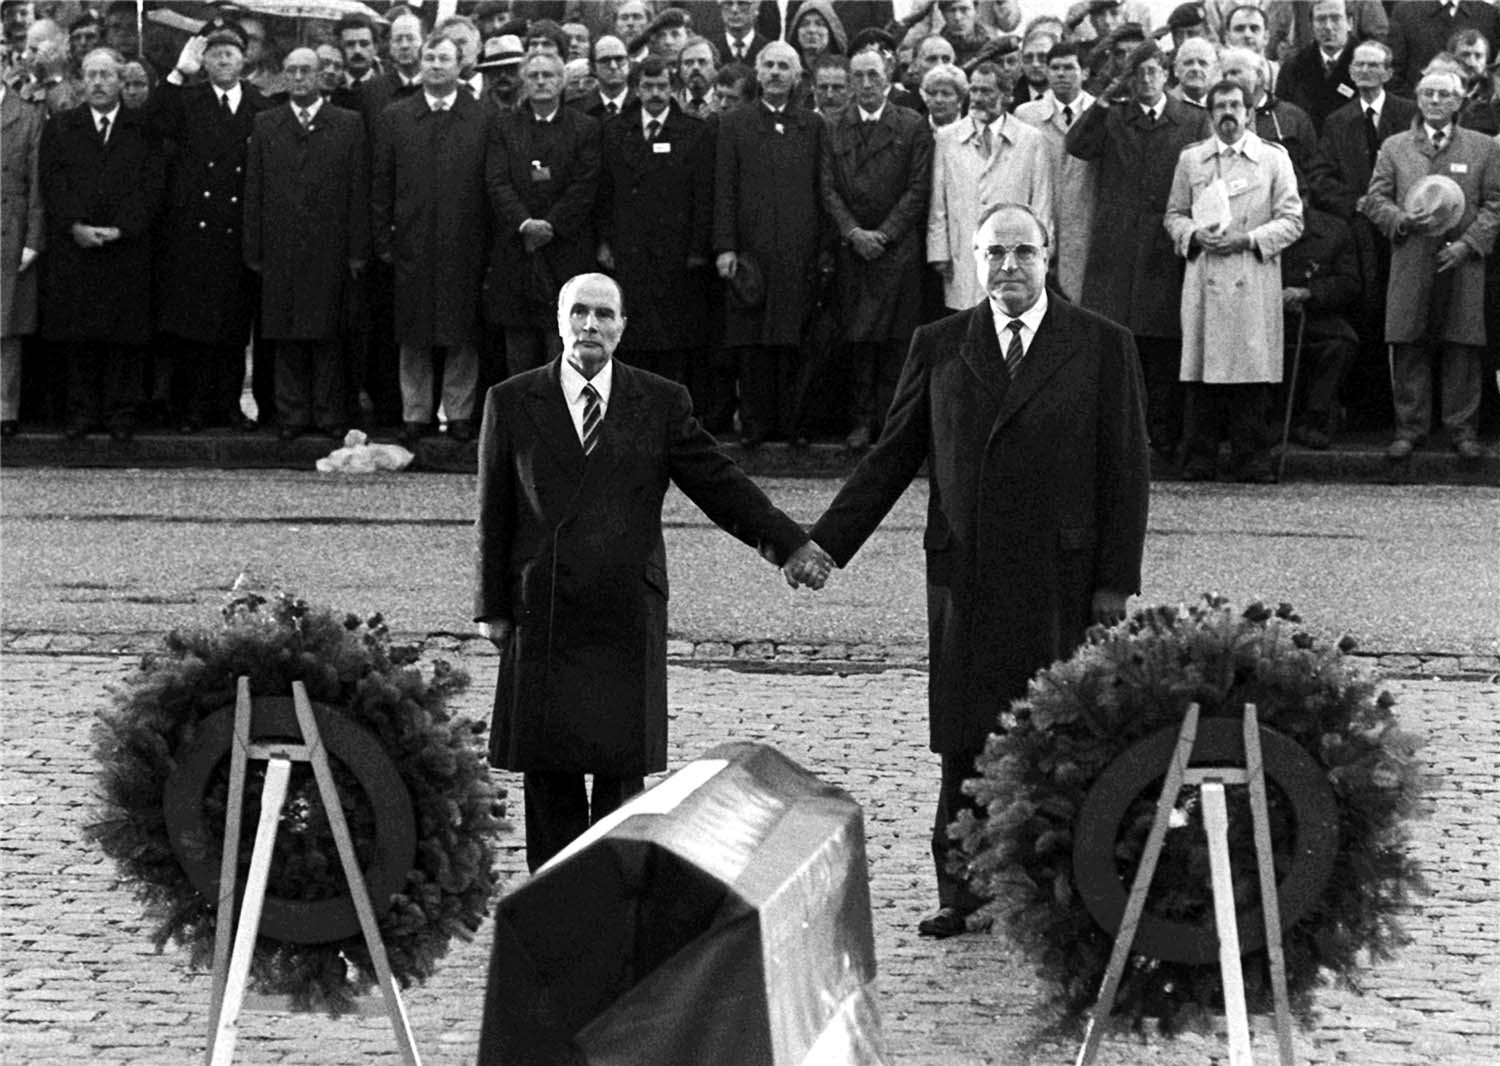 French President François Mitterrand and German Chancellor Helmut Kohl in 1984 at Douaumont cemetery.